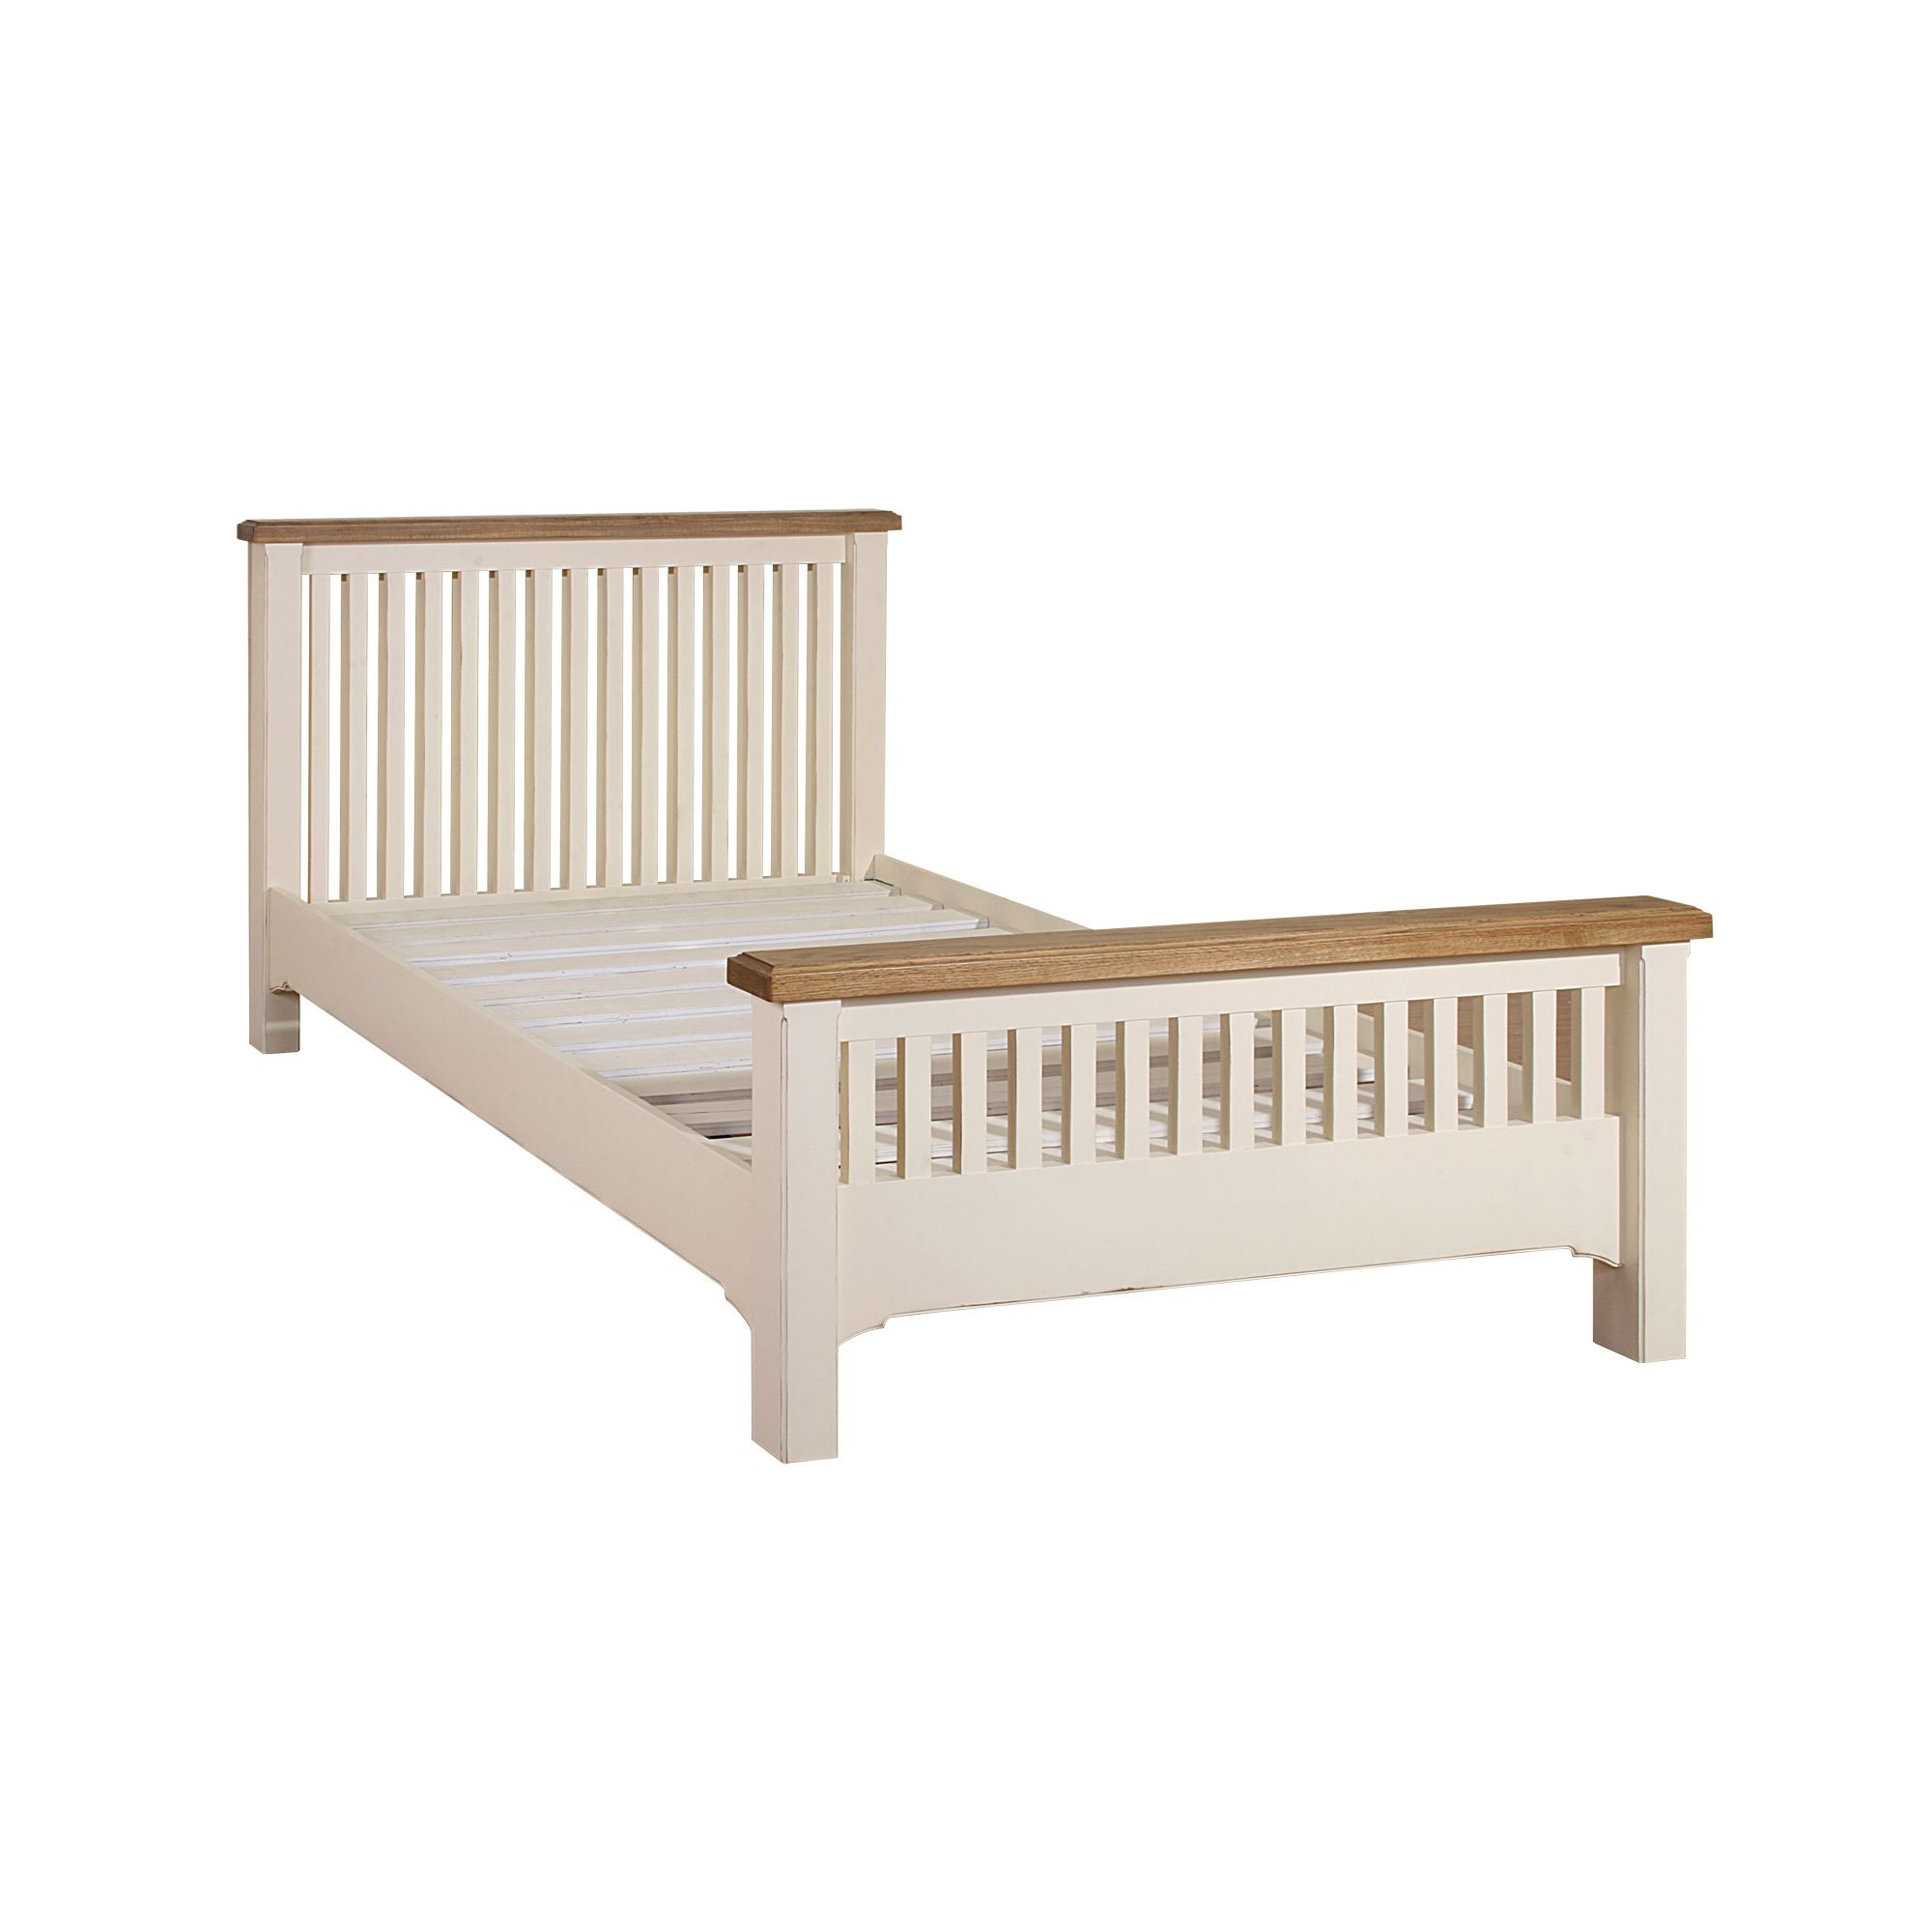 Alterton Furniture Marseille Bed Frame - Double at Tescos Direct